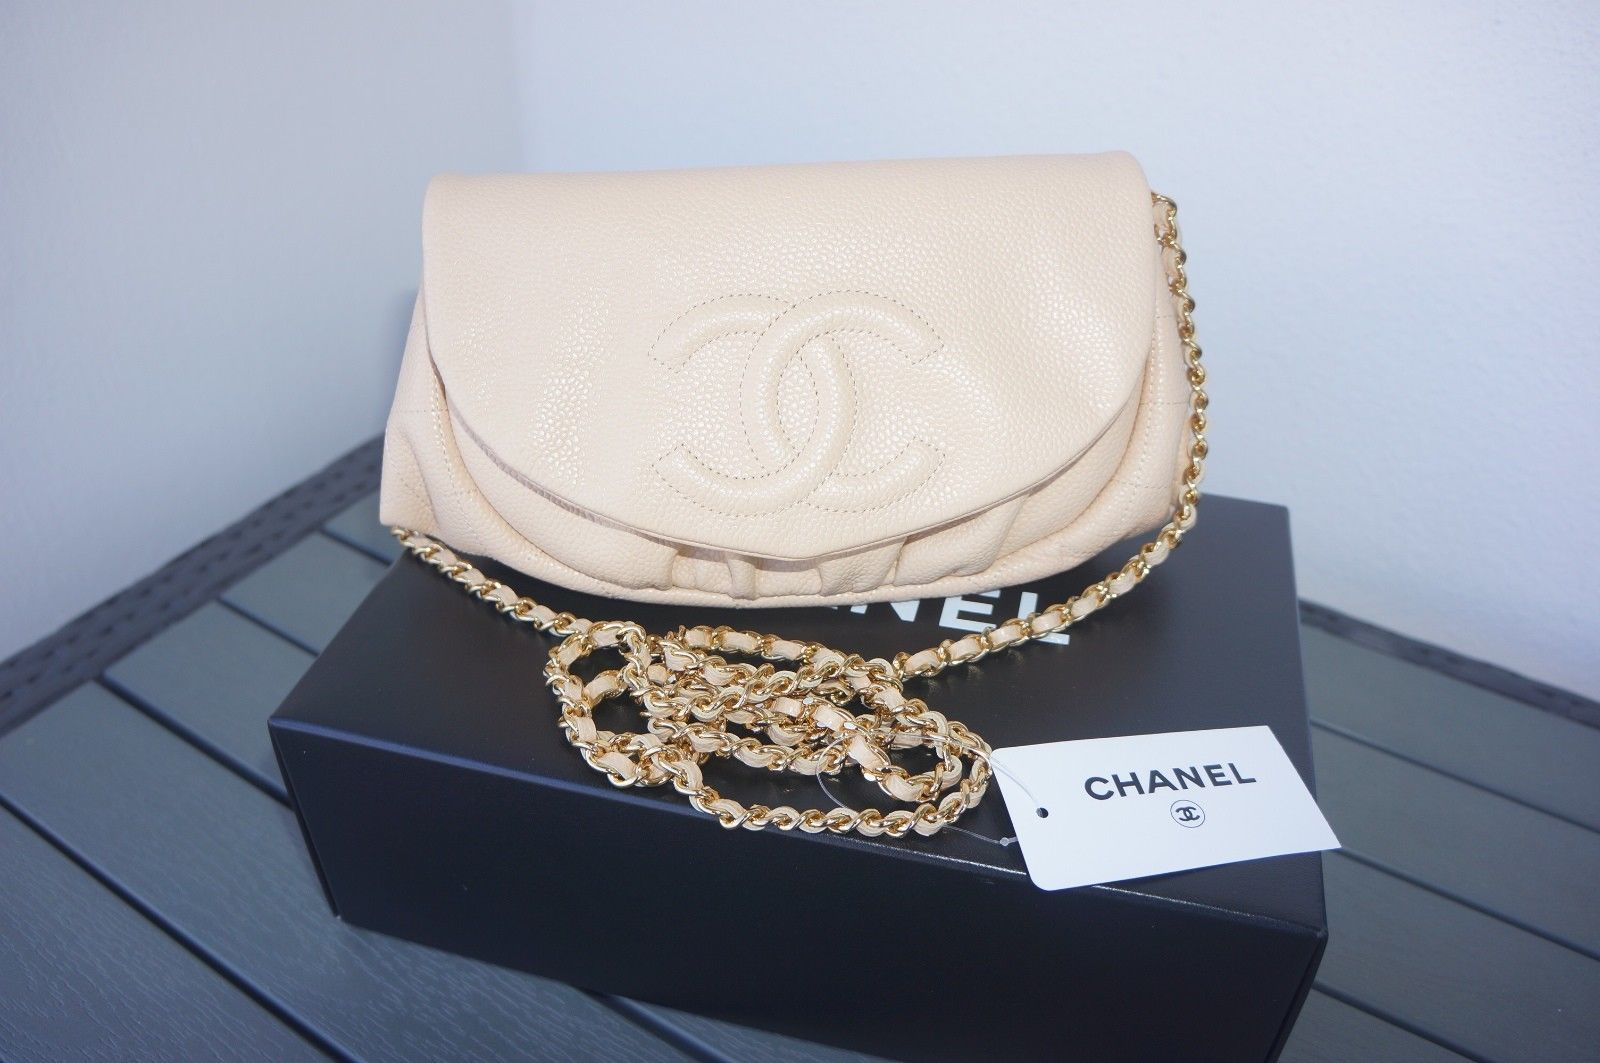 e3149a41baf1cc NEW Chanel Beige Caviar Leather GHW Wallet and 50 similar items